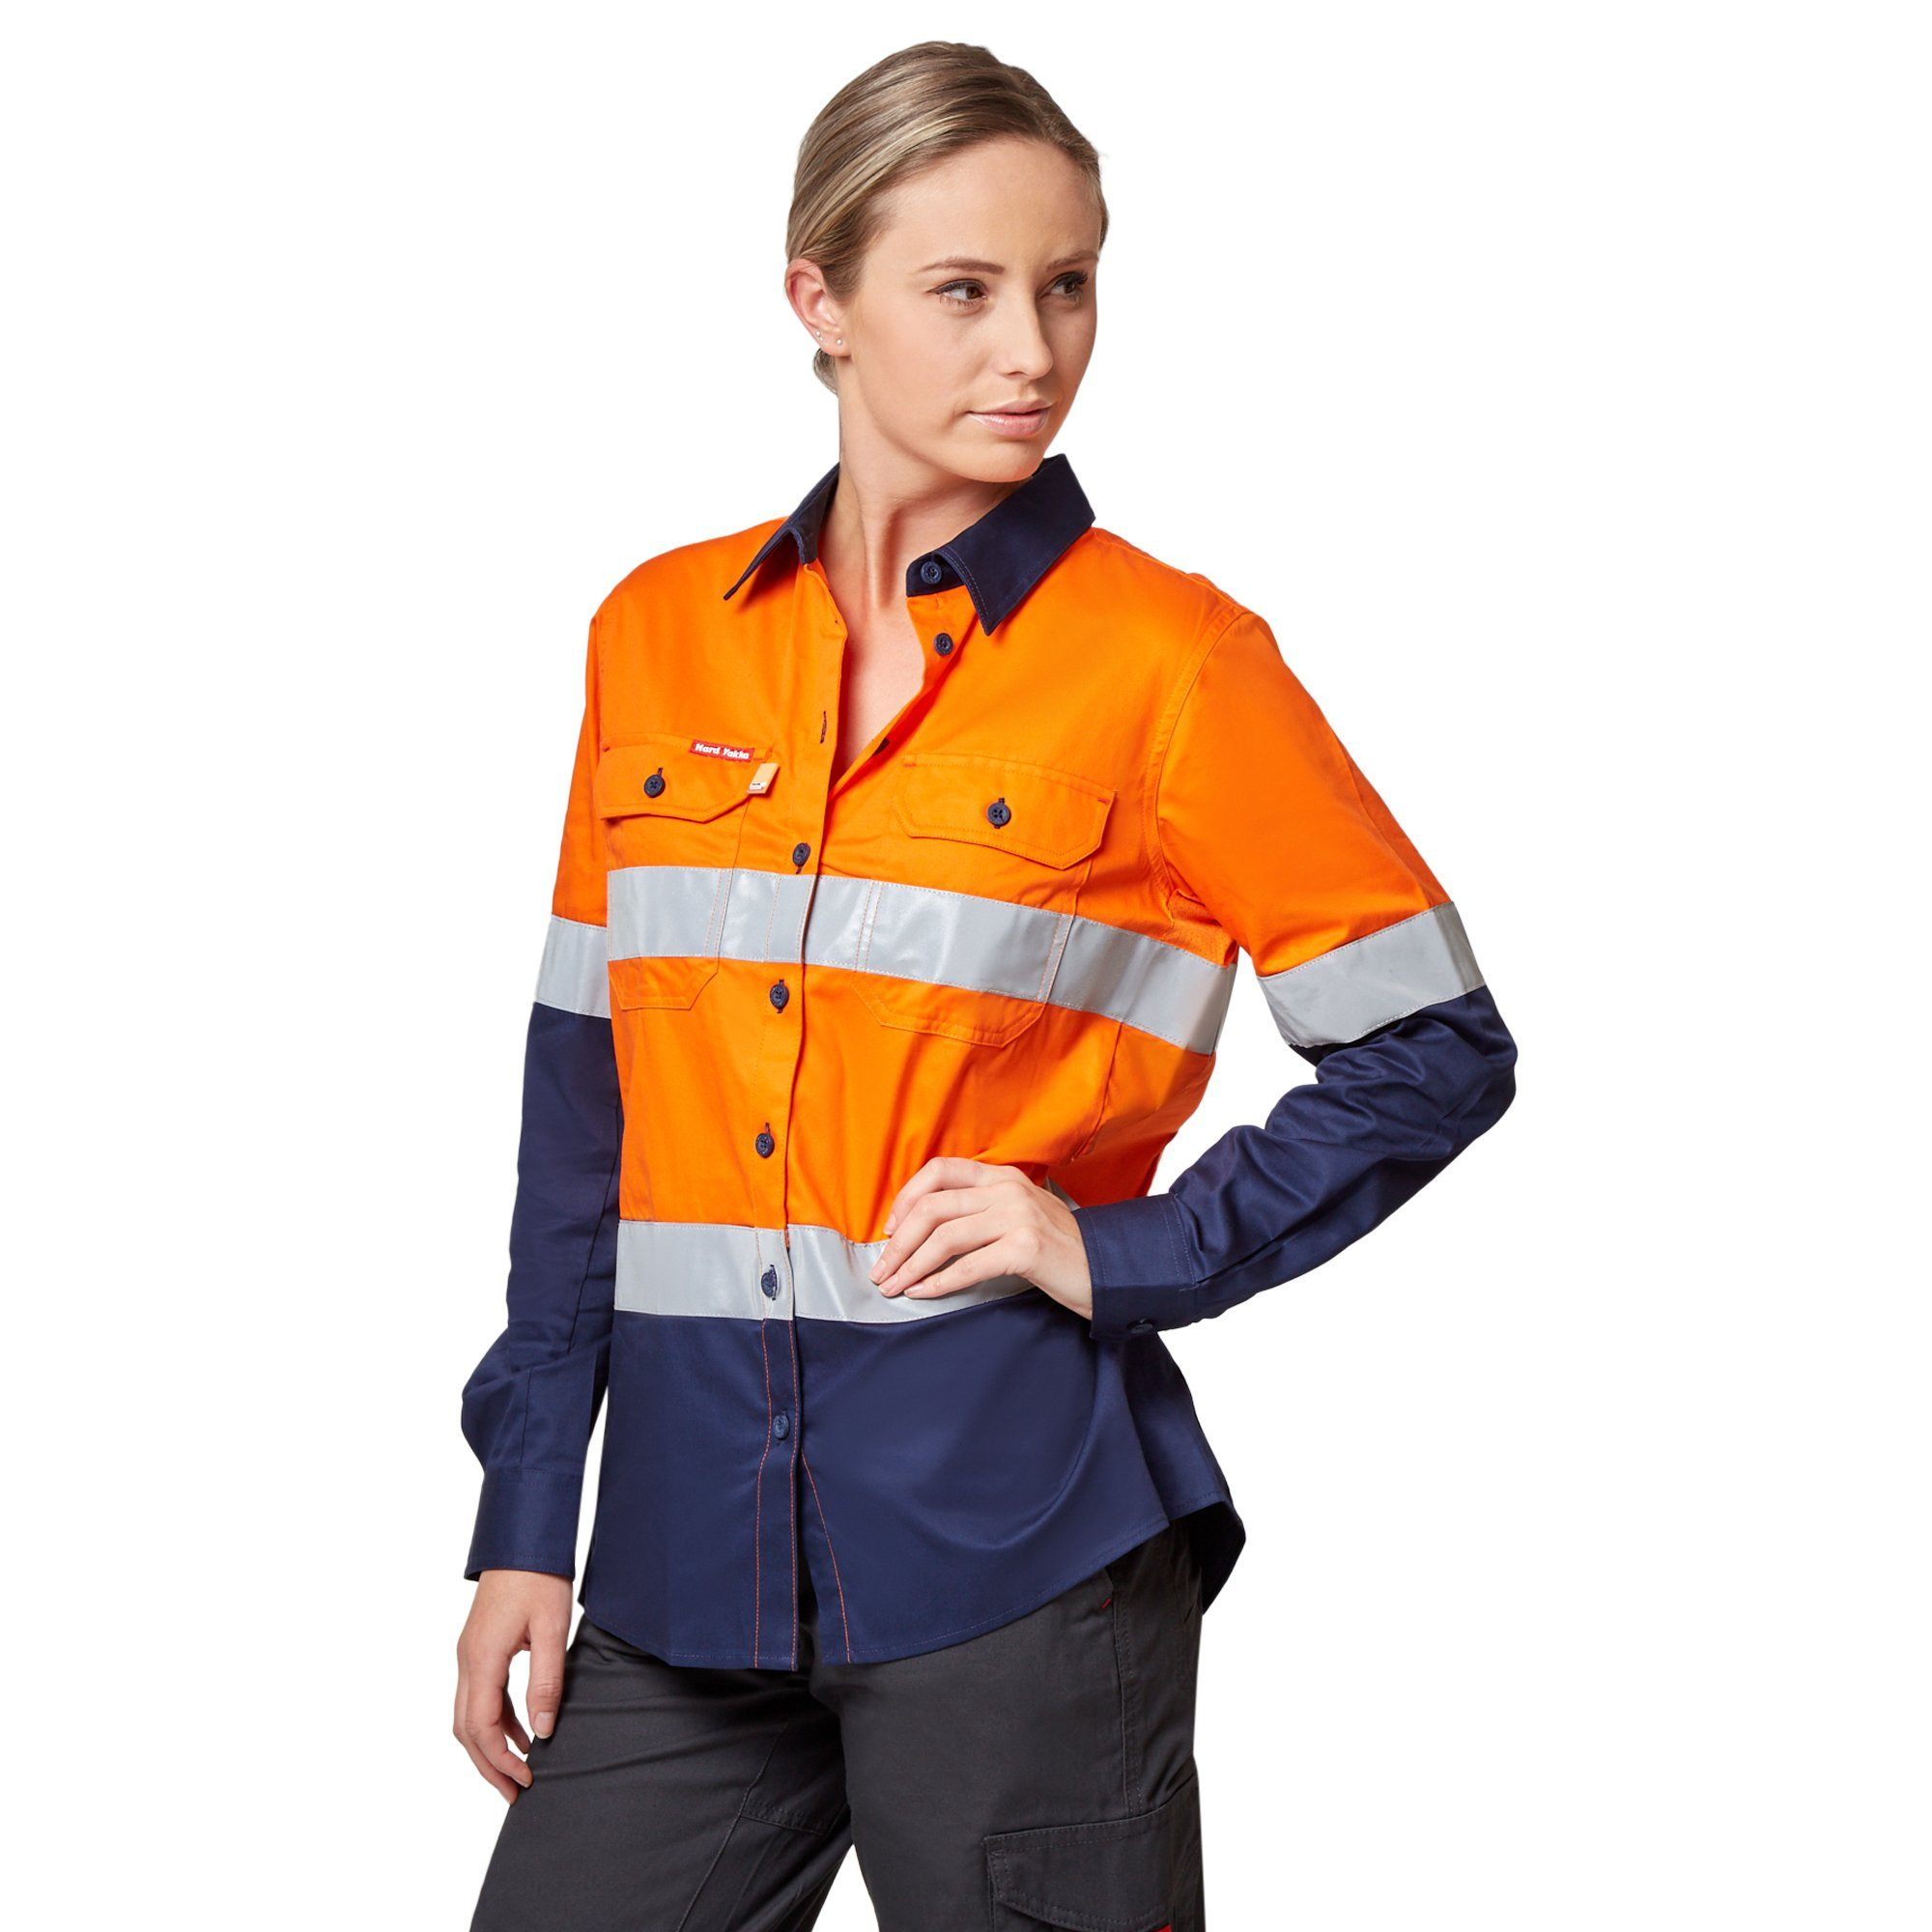 Hard Yakka Hi-Visibility Ventilated Long Sleeve Shirt with Tape - Orange/Navy Workwear Hard Yakka